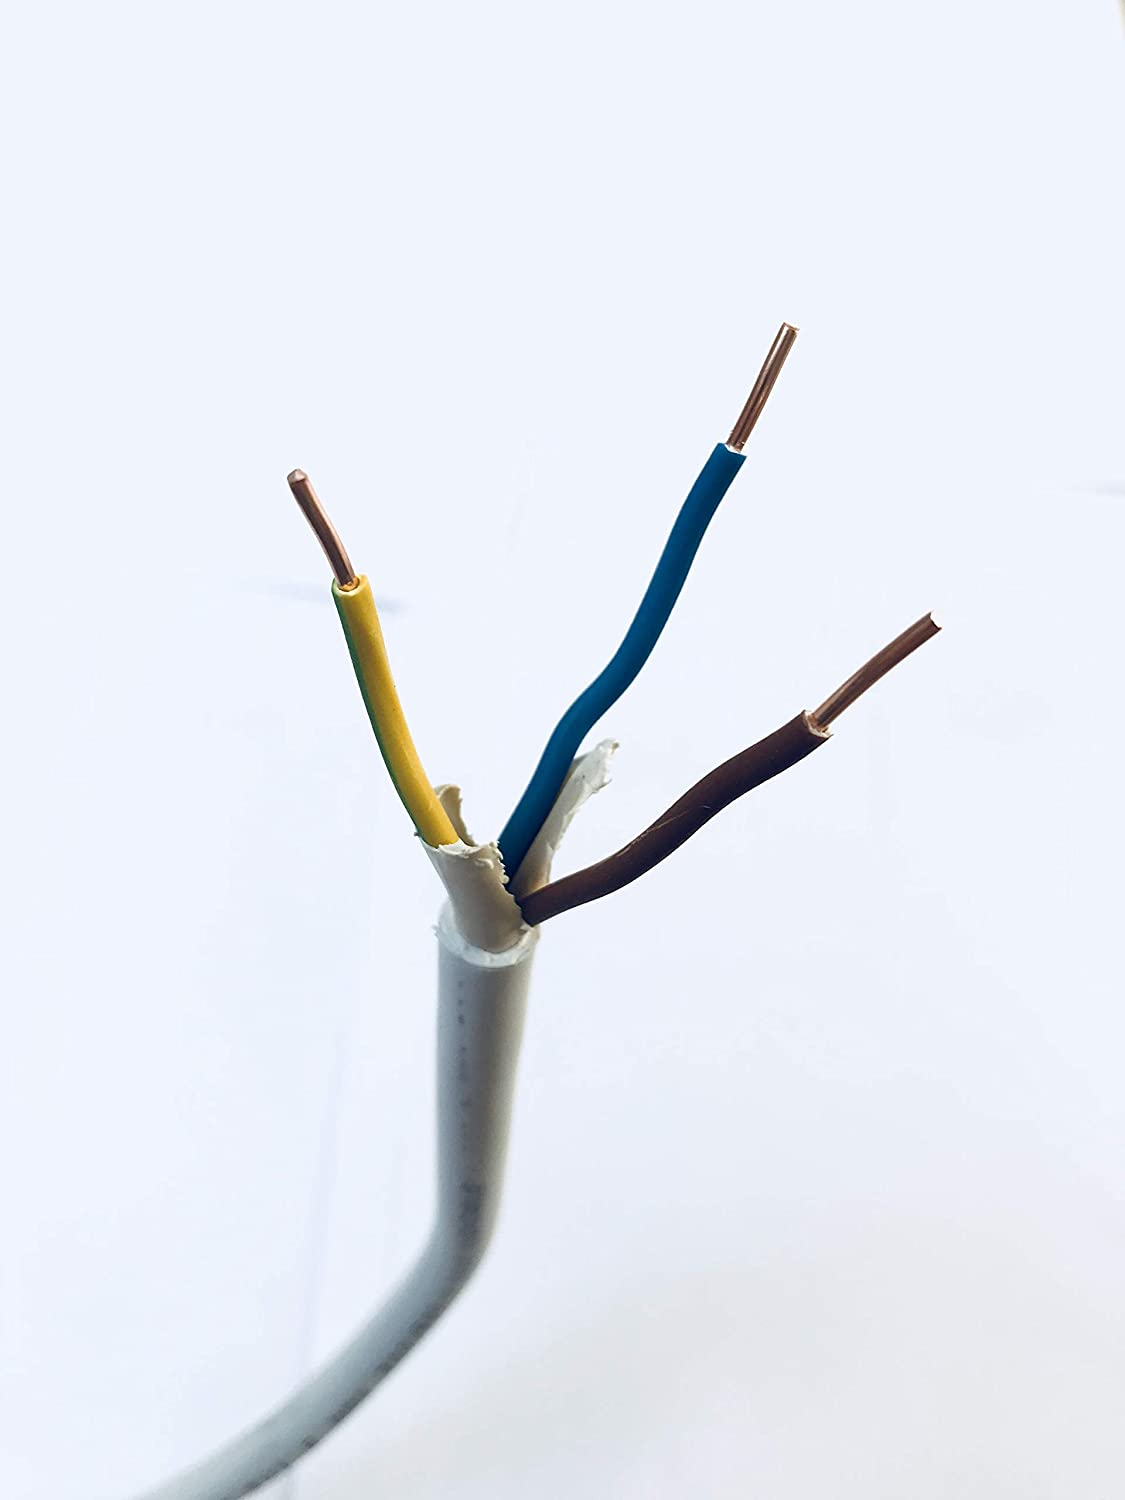 Installation cable NYM-J 3 x 1,5 mm Gray colour 100m